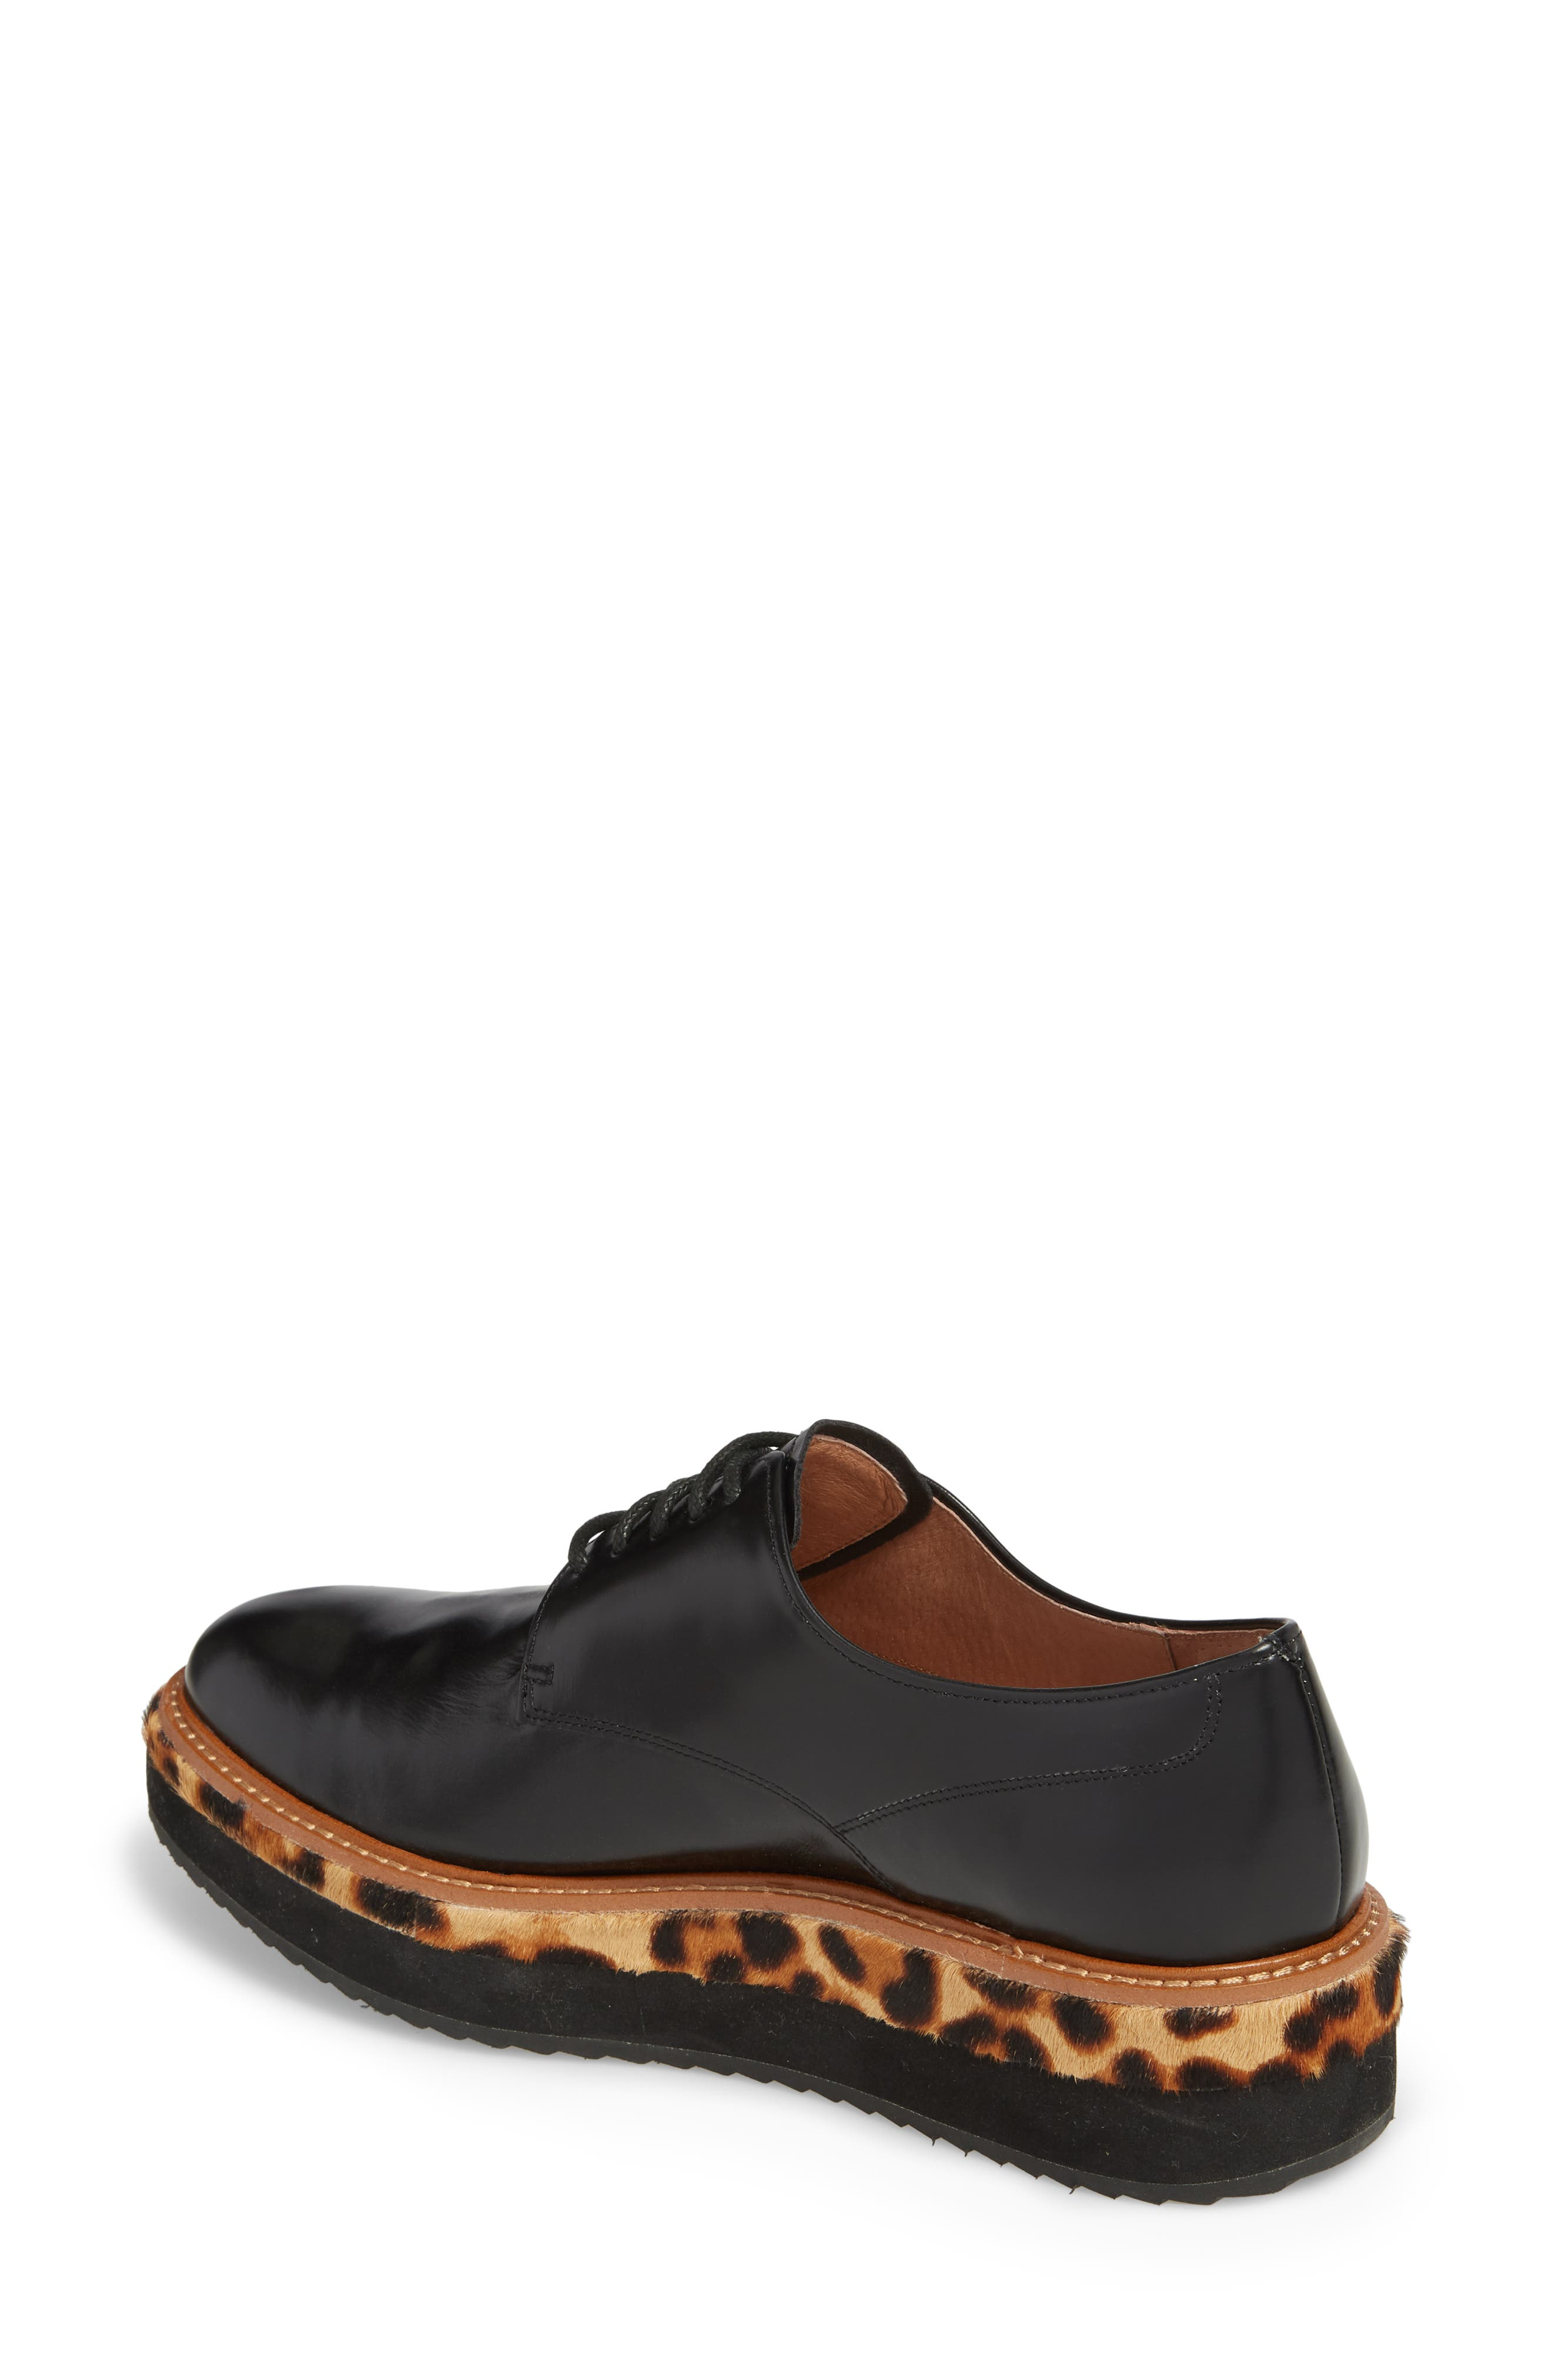 Maddox Oxford,                             Alternate thumbnail 2, color,                             BLACK BOX LEATHER/ LEOPARD